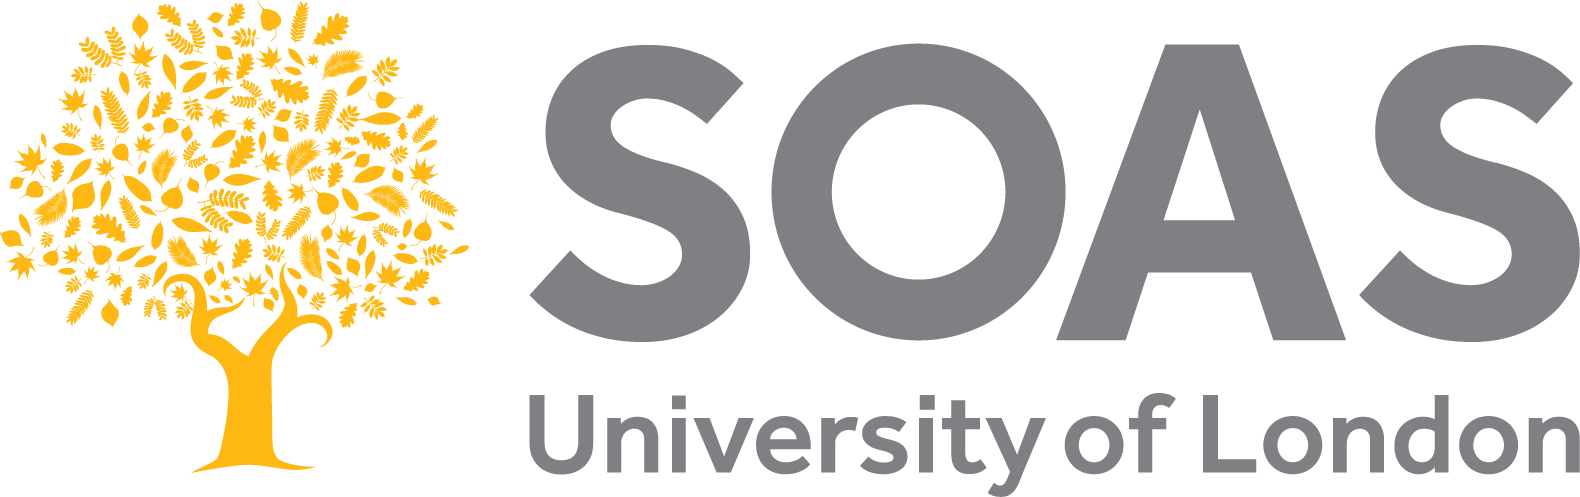 Image of SOAS logo colour on transparent